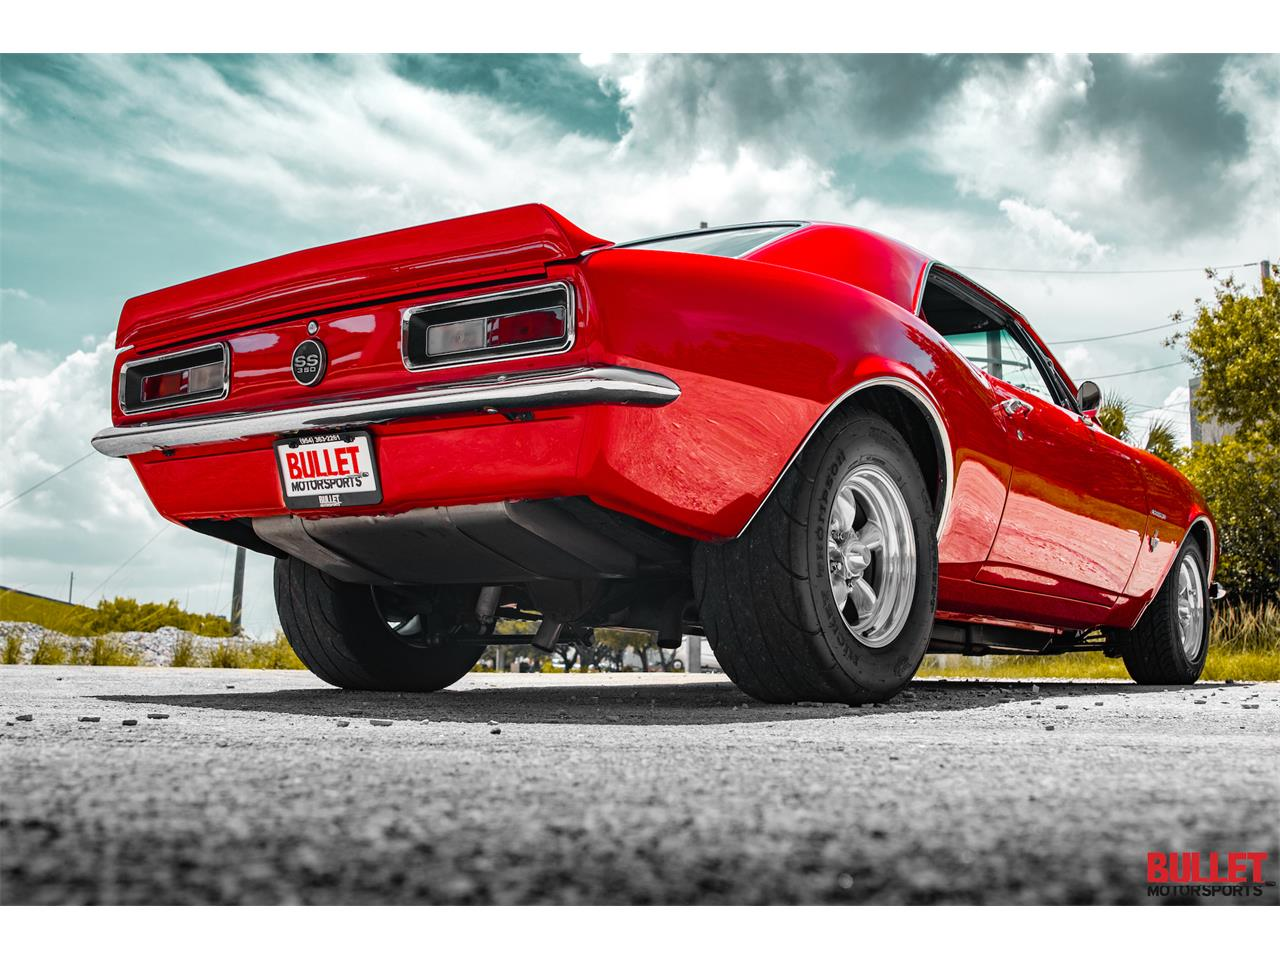 Large Picture of 1967 Chevrolet Camaro located in Florida - $49,950.00 Offered by Bullet Motorsports Inc - QIJZ